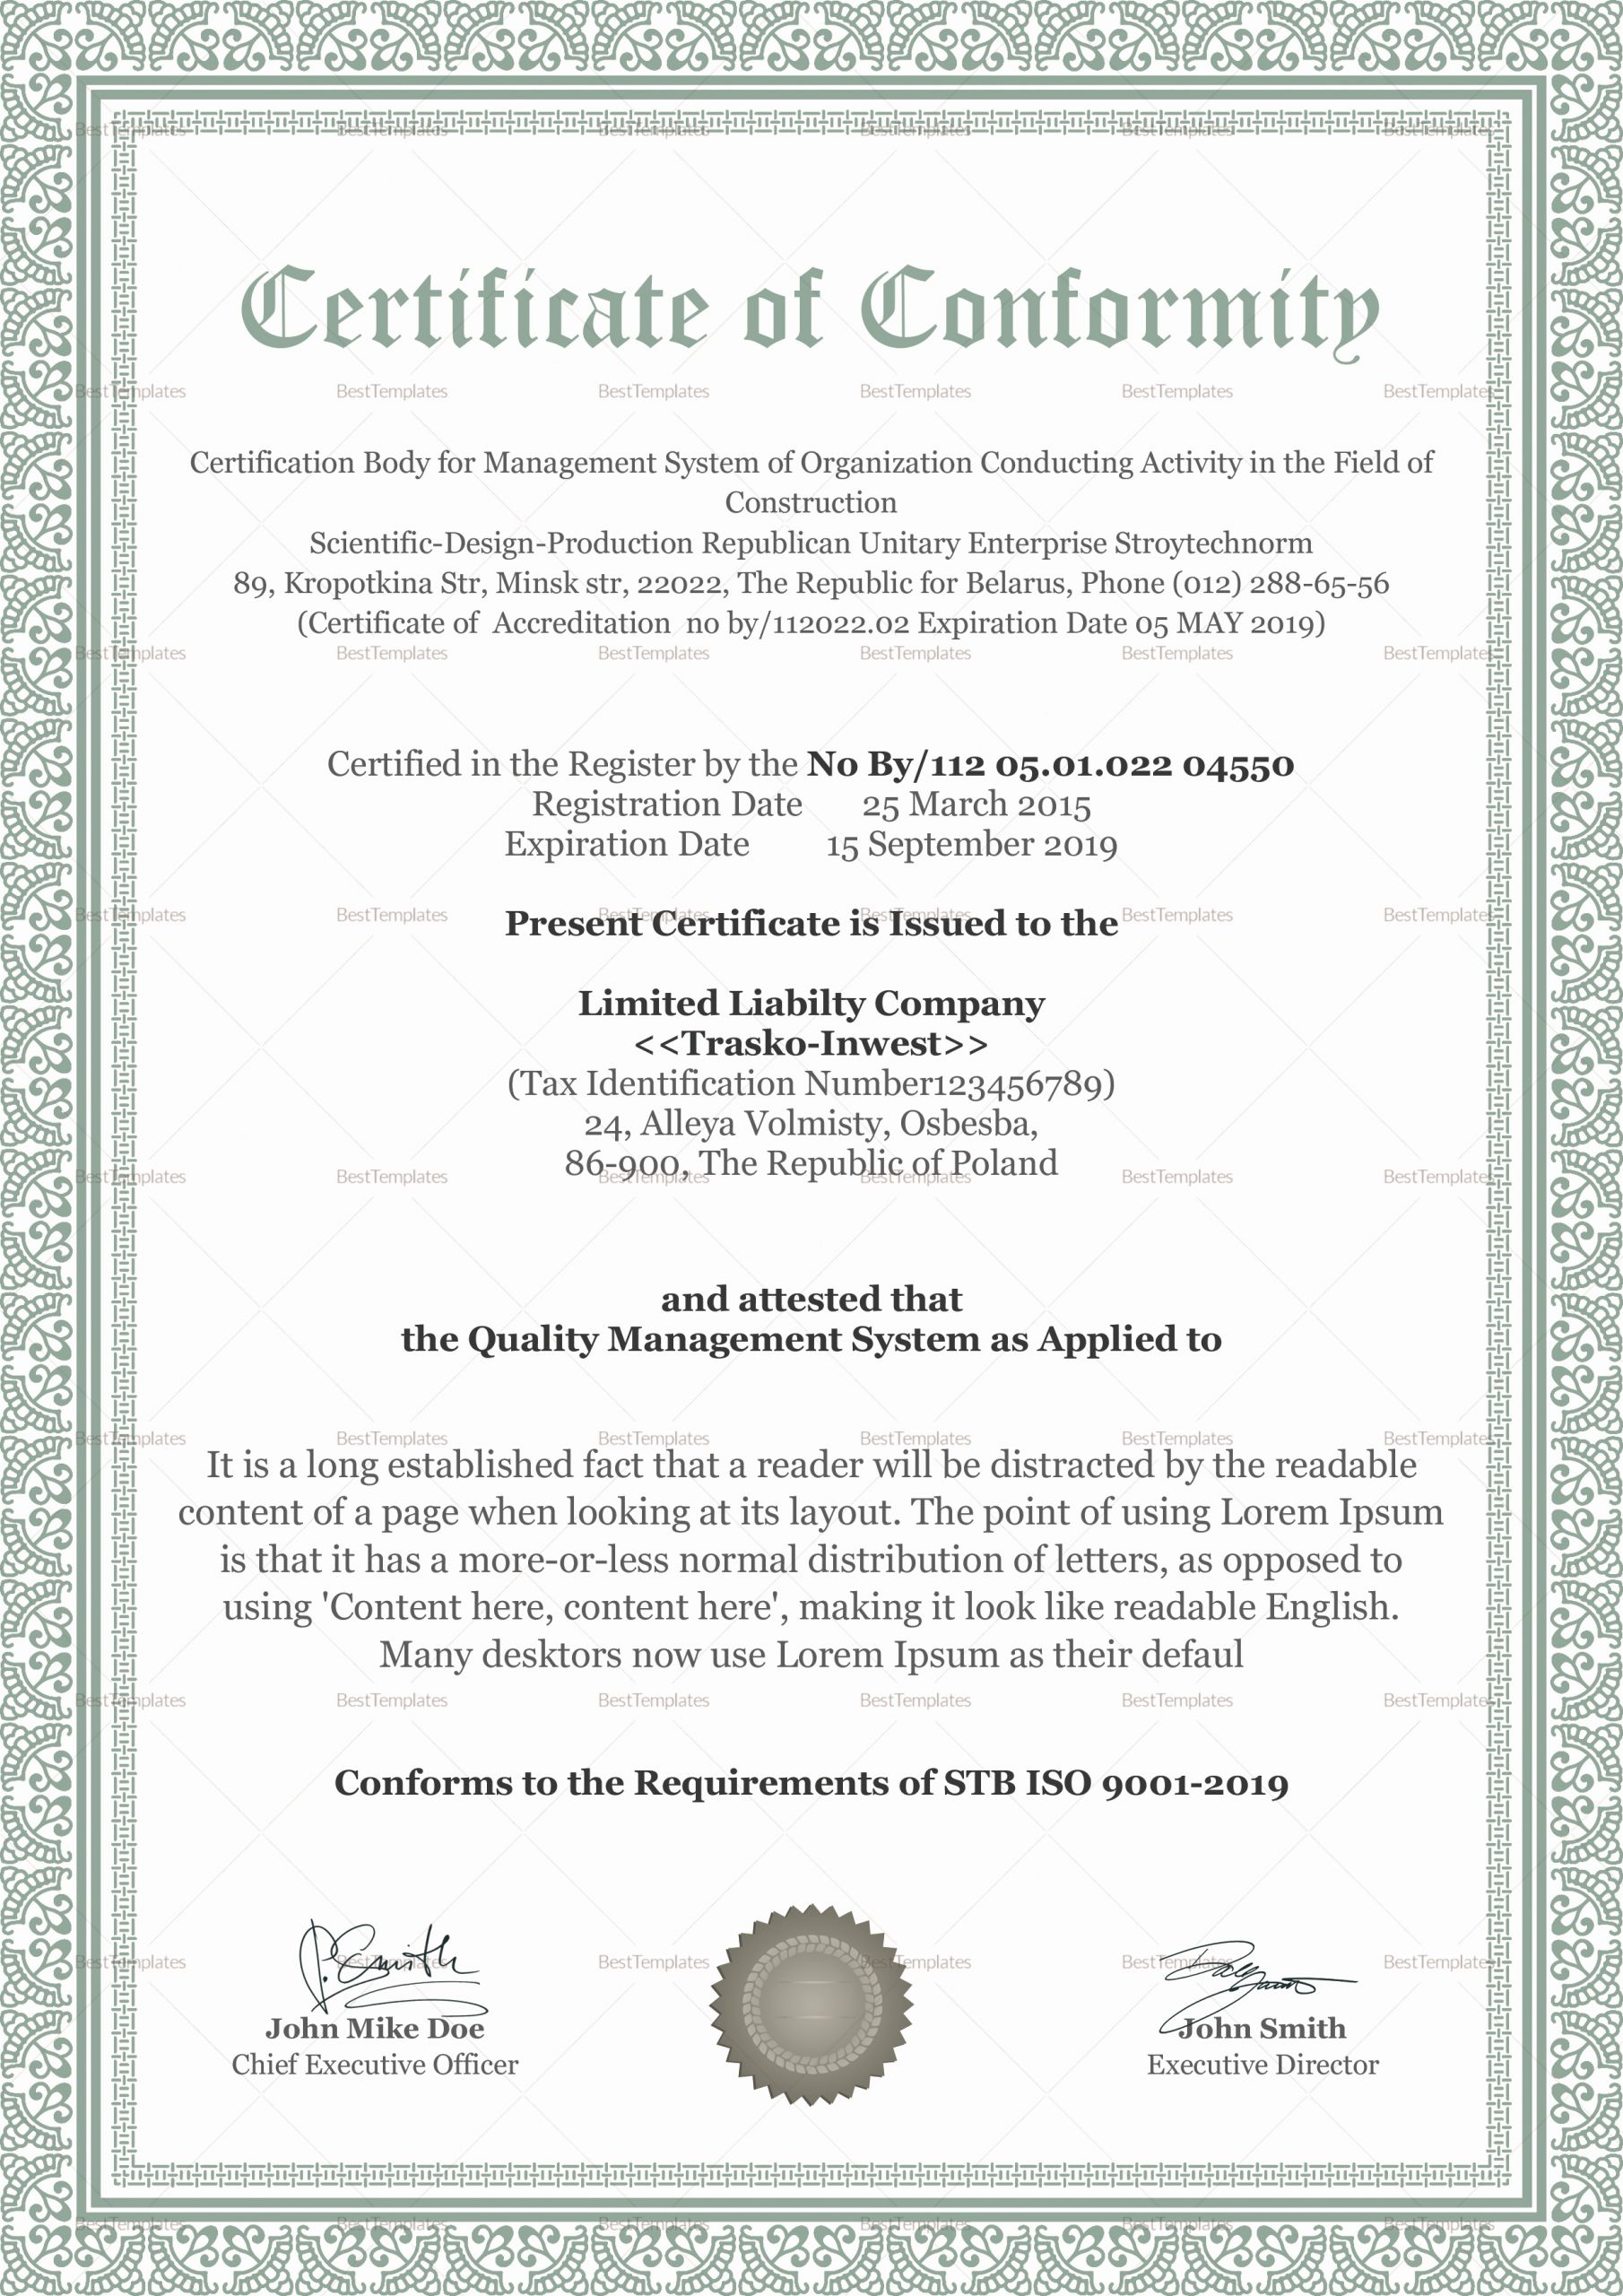 Certificate Of Conformance Template Word Best Of Conformity Certificate Design Template In Psd Word